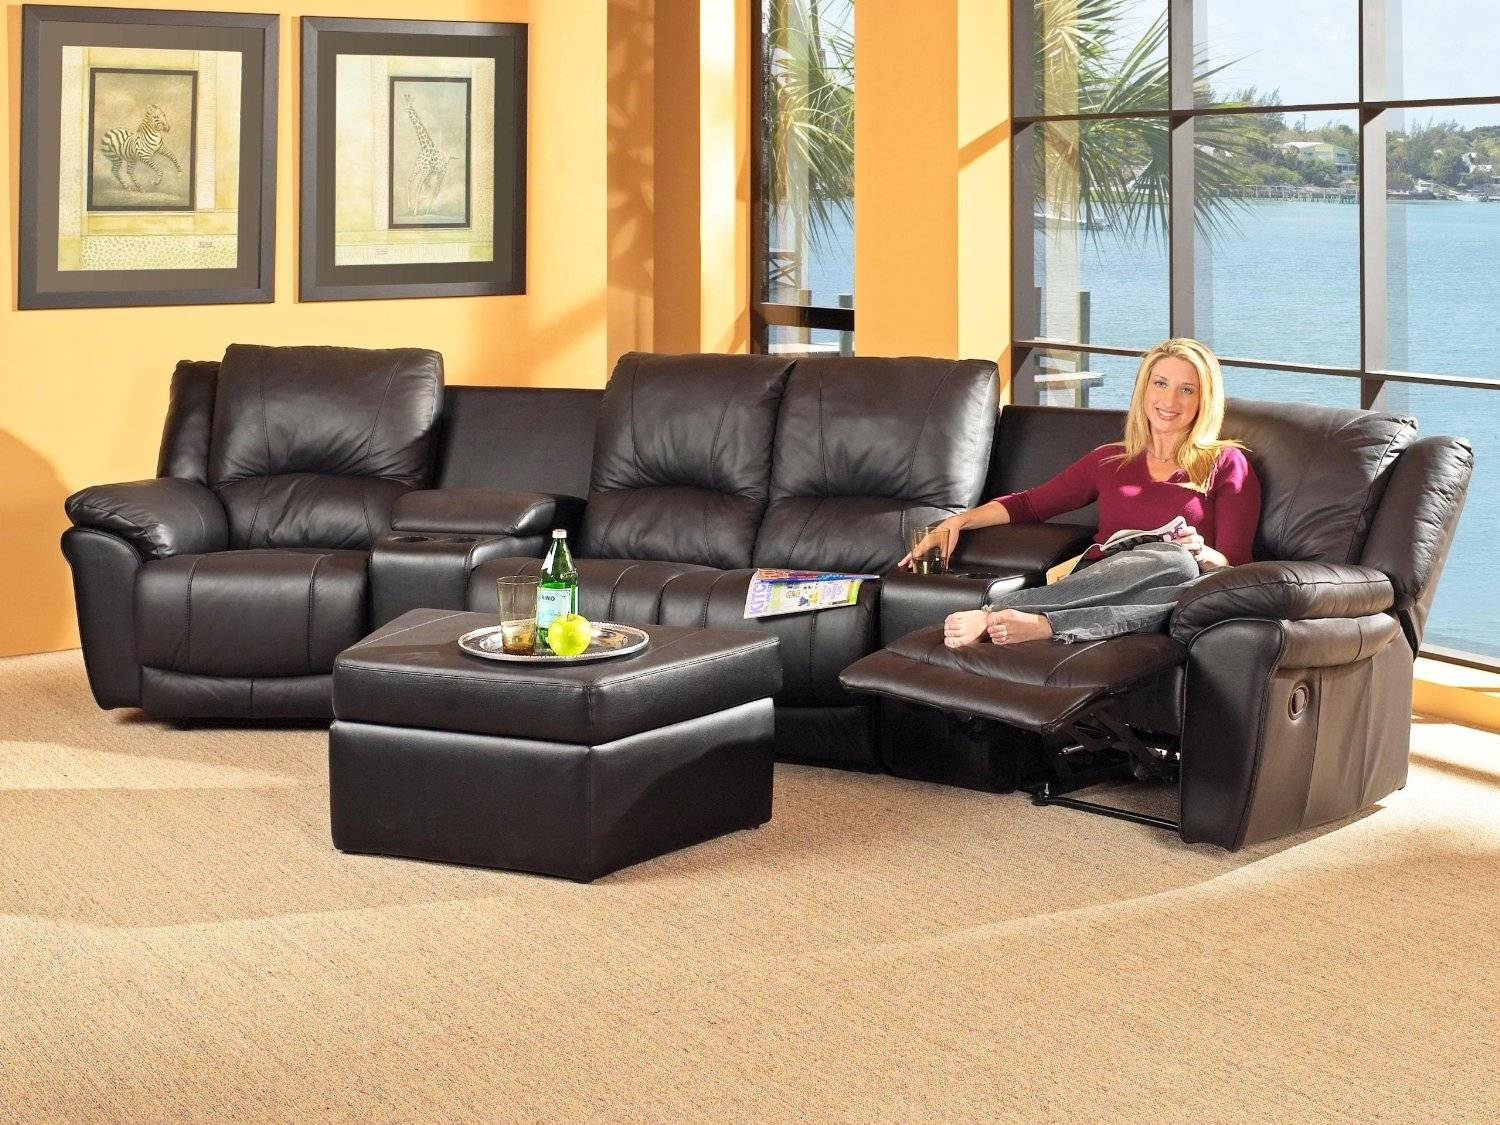 Sectional Sofas With Recliners :mypire Intended For Jedd Fabric Reclining Sectional Sofa (Image 28 of 30)